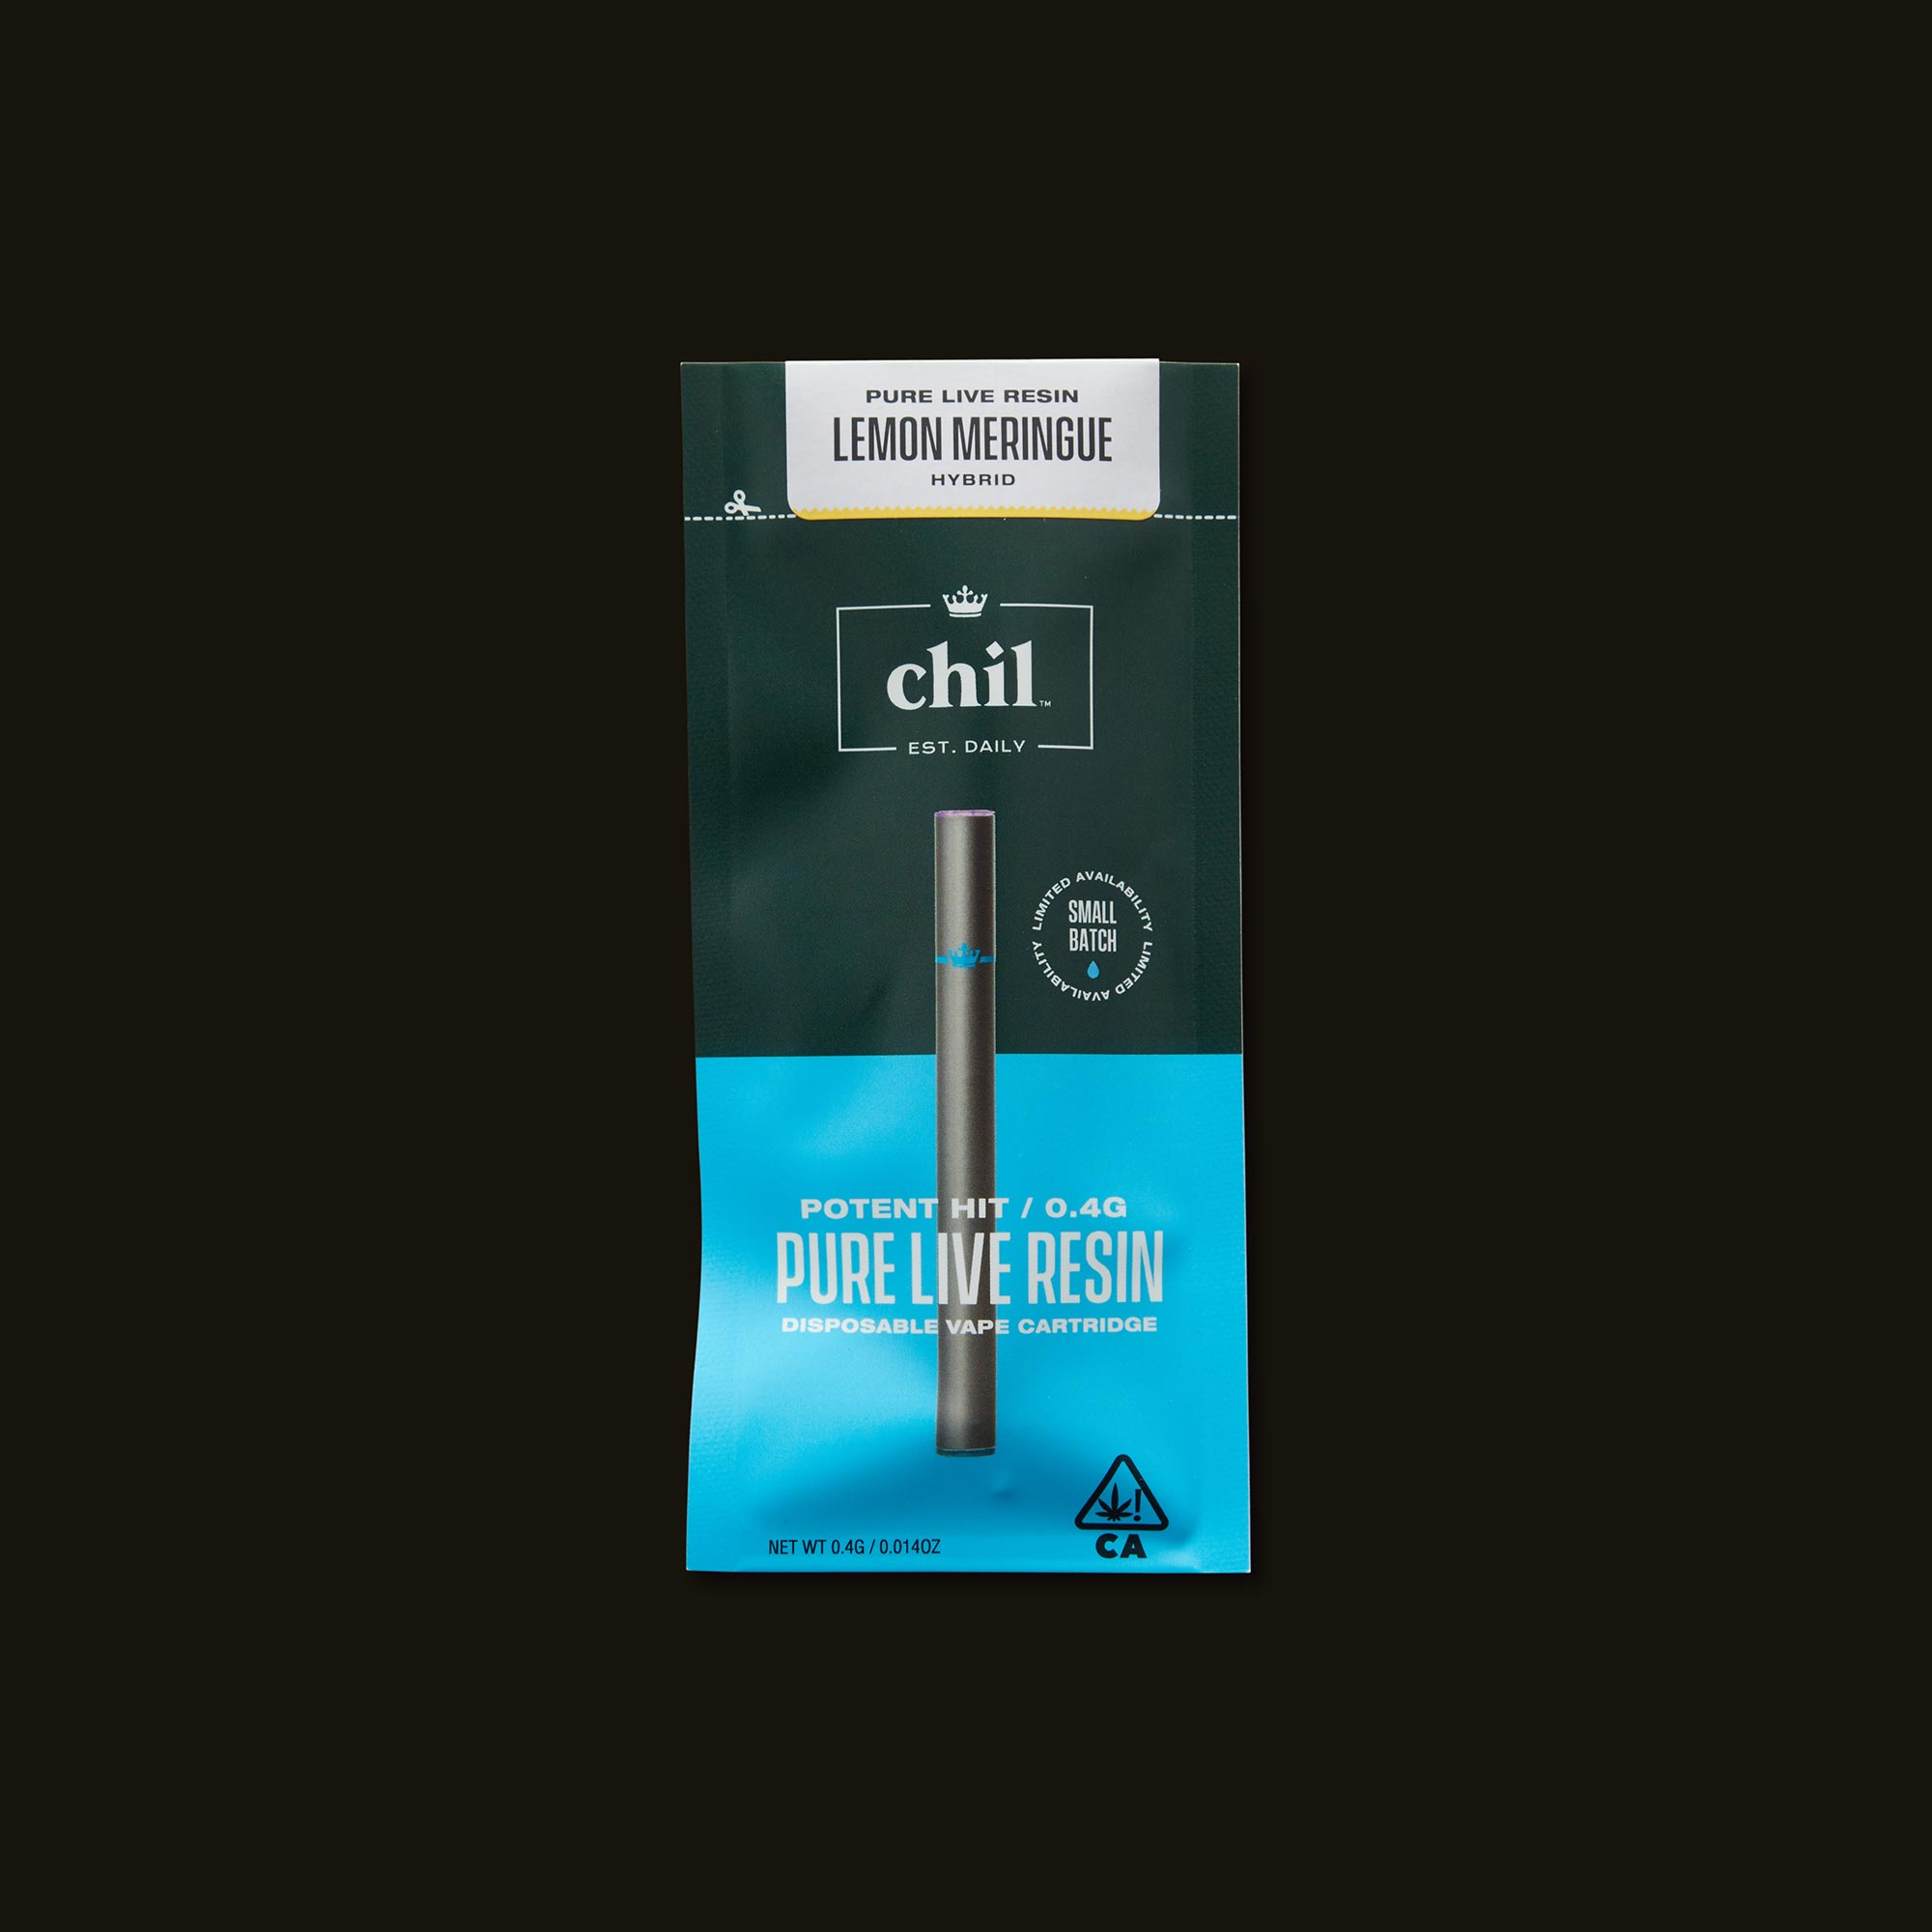 Chil Lemon Meringue Pure Live Resin Disposable Vape Pen Front of Package